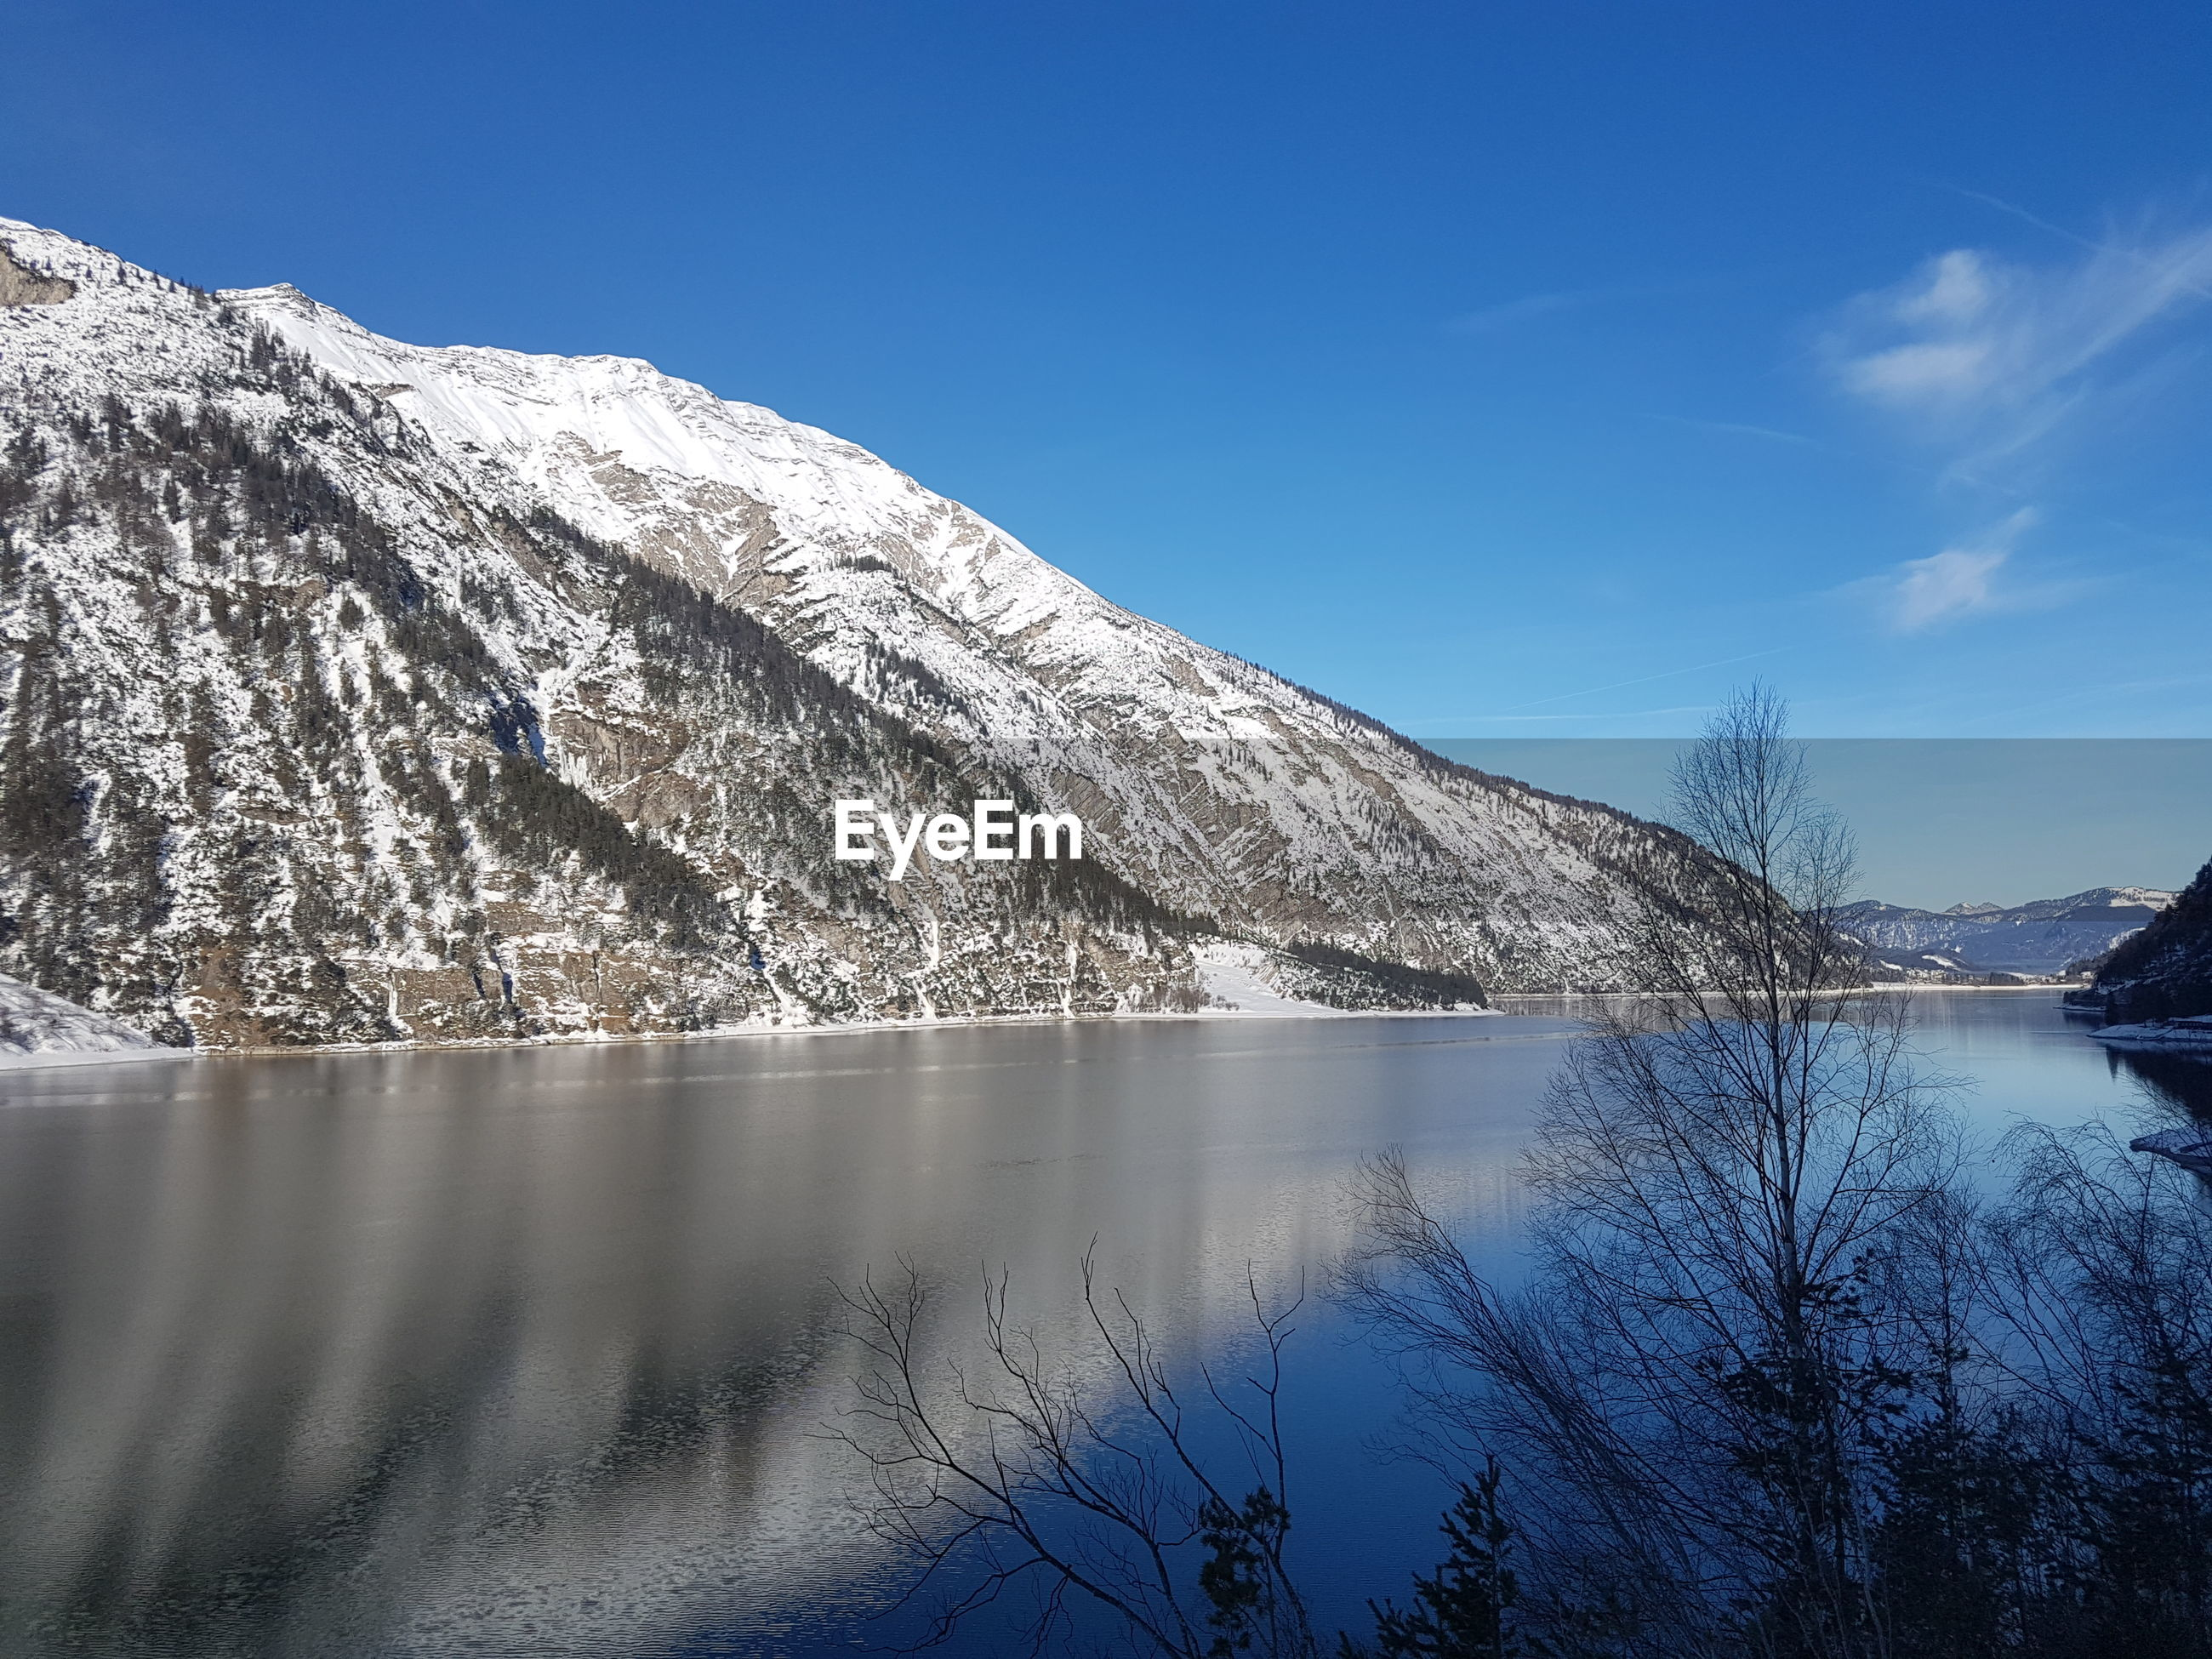 LOW ANGLE VIEW OF LAKE AGAINST MOUNTAIN